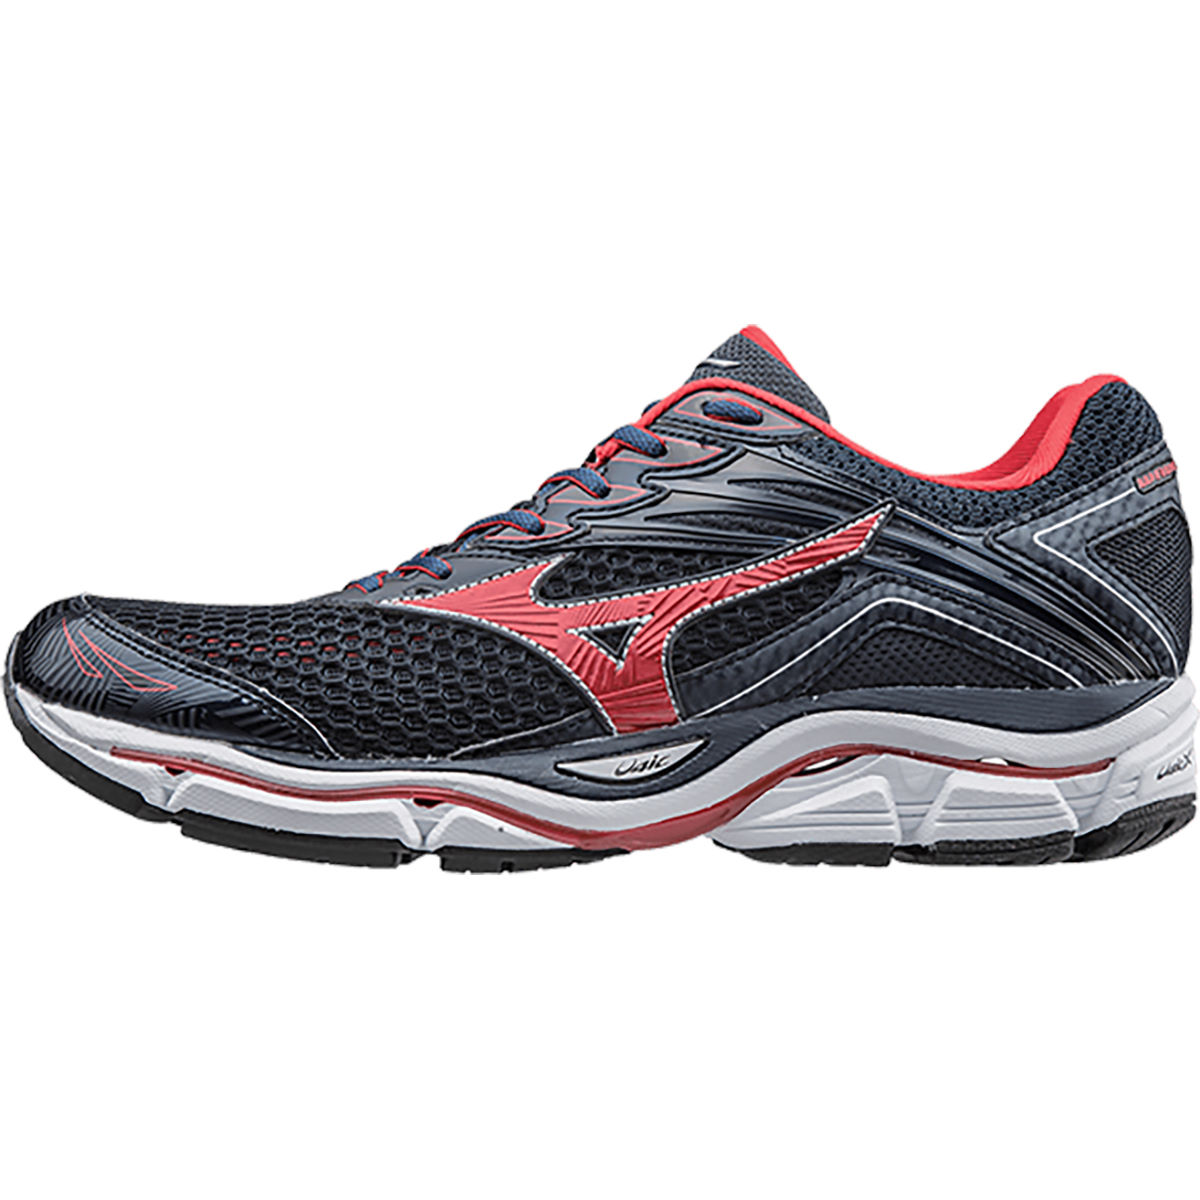 Mizuno Wave Enigma 6 Shoes (SS17) - UK 10.5 Dress Depths/Red